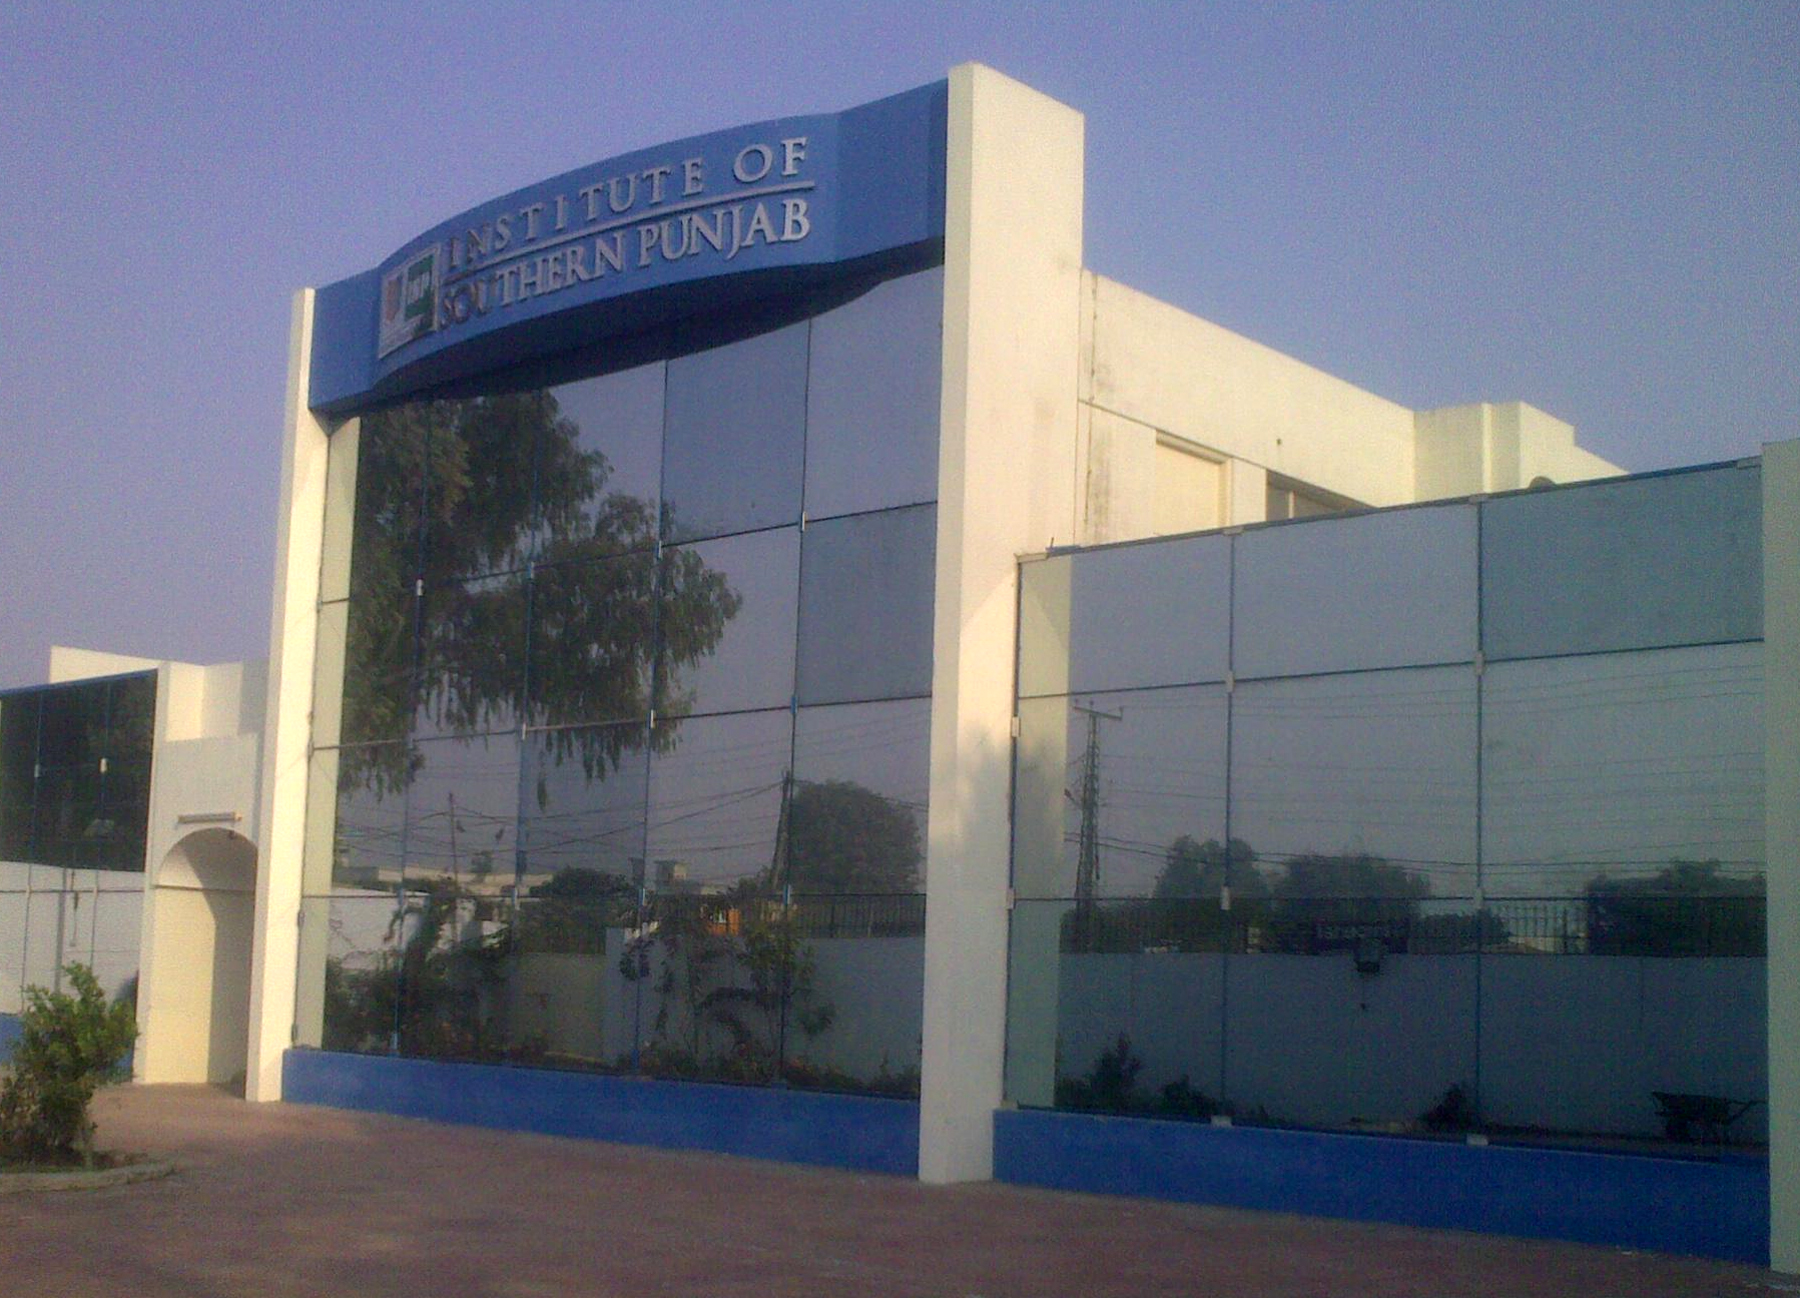 Institute of Southern Punjab Admission